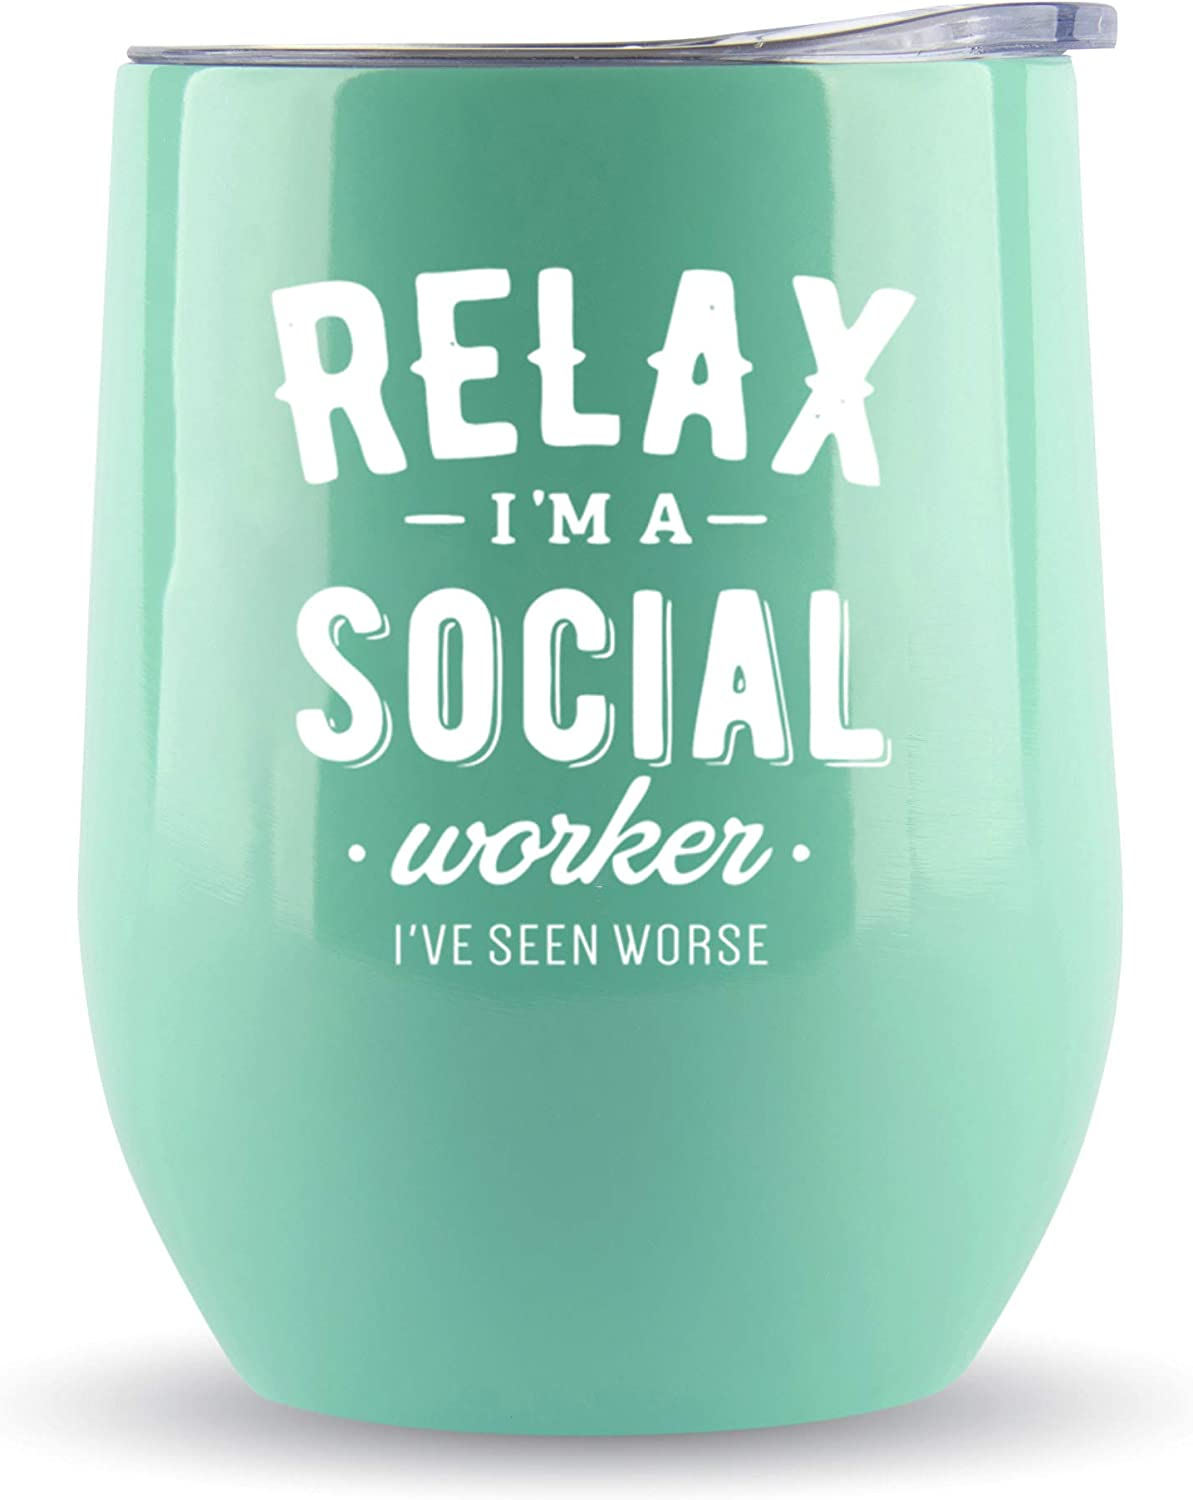 Social Worker Gifts for Women- Tumbler/Mug 12oz for Coffee, Wine or Any Drink- Funny Gift Ideas for Social Work, Graduation, Glass, Bulk, Office